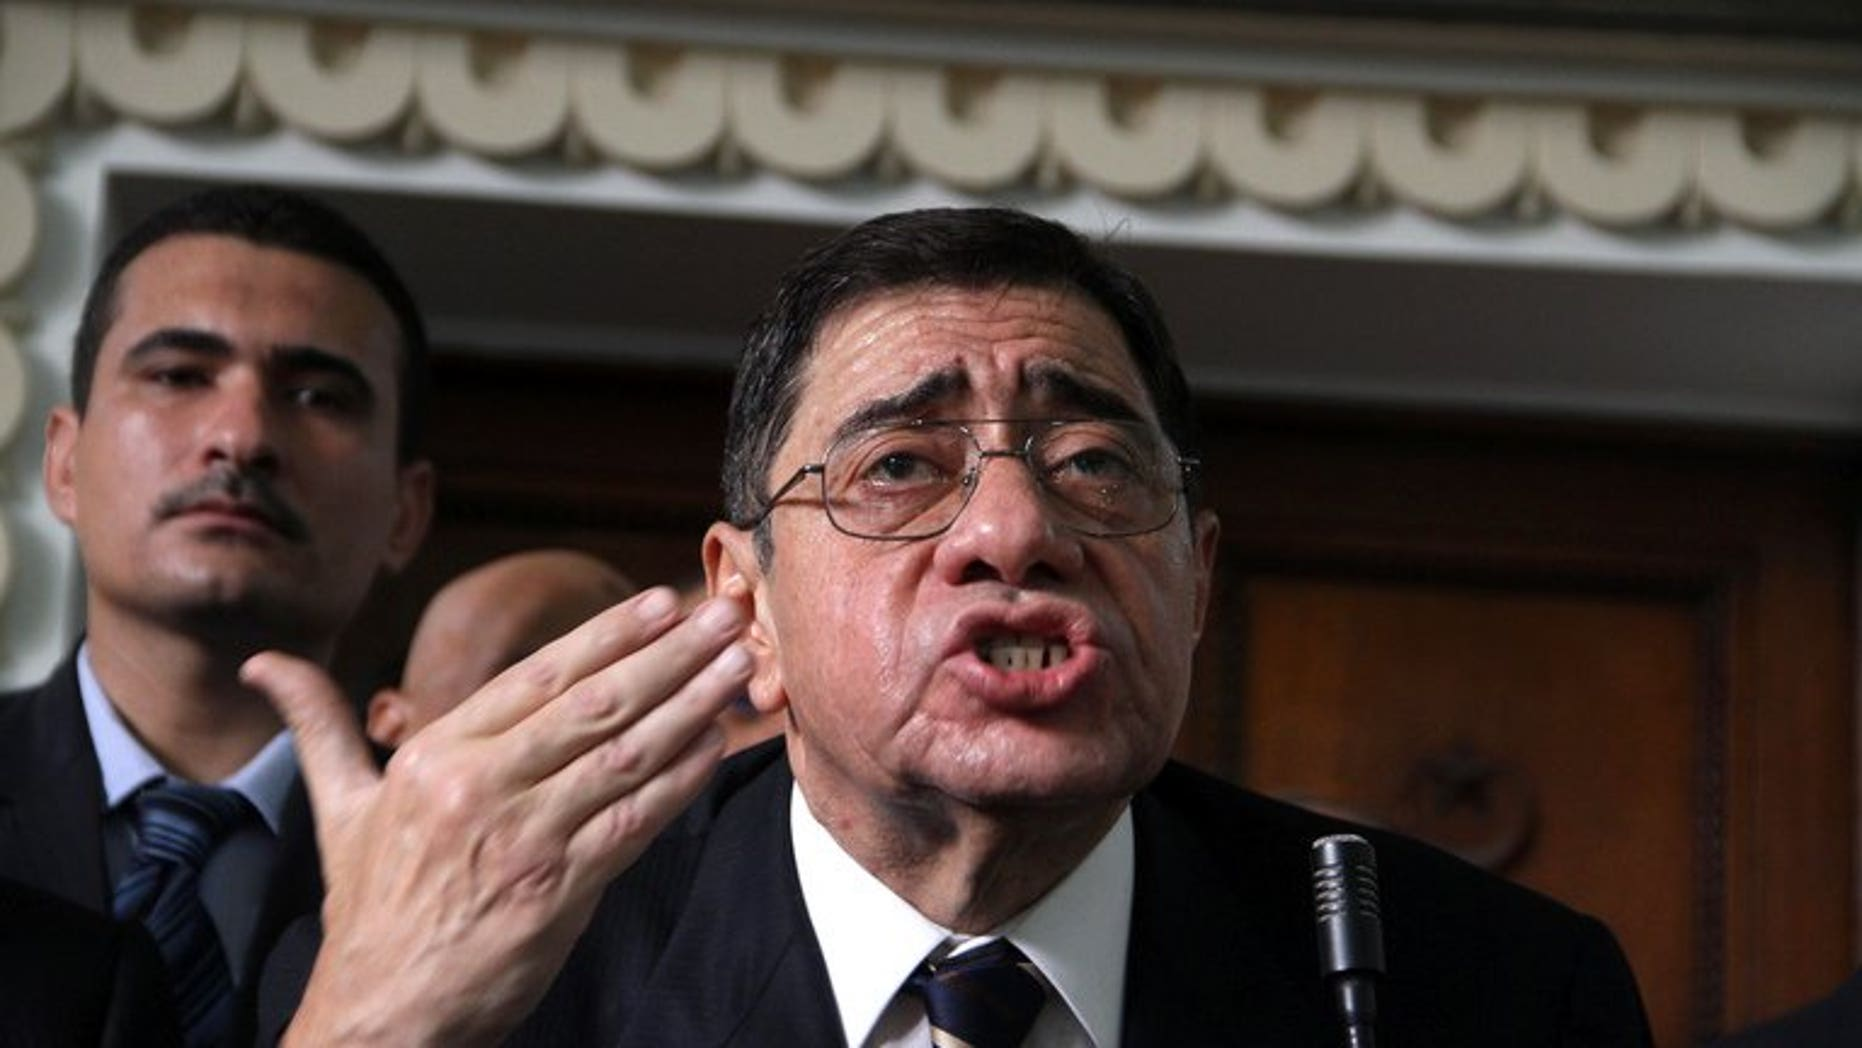 Egyptian public prosecutor Abdel Meguid Mahmud addresses judges at the High Court in Cairo, on October 13, 2012. An Egyptian court has ordered the reinstatement of Mahmud, whose sacking in November sparked a bitter row between President Mohamed Morsi and the judiciary.